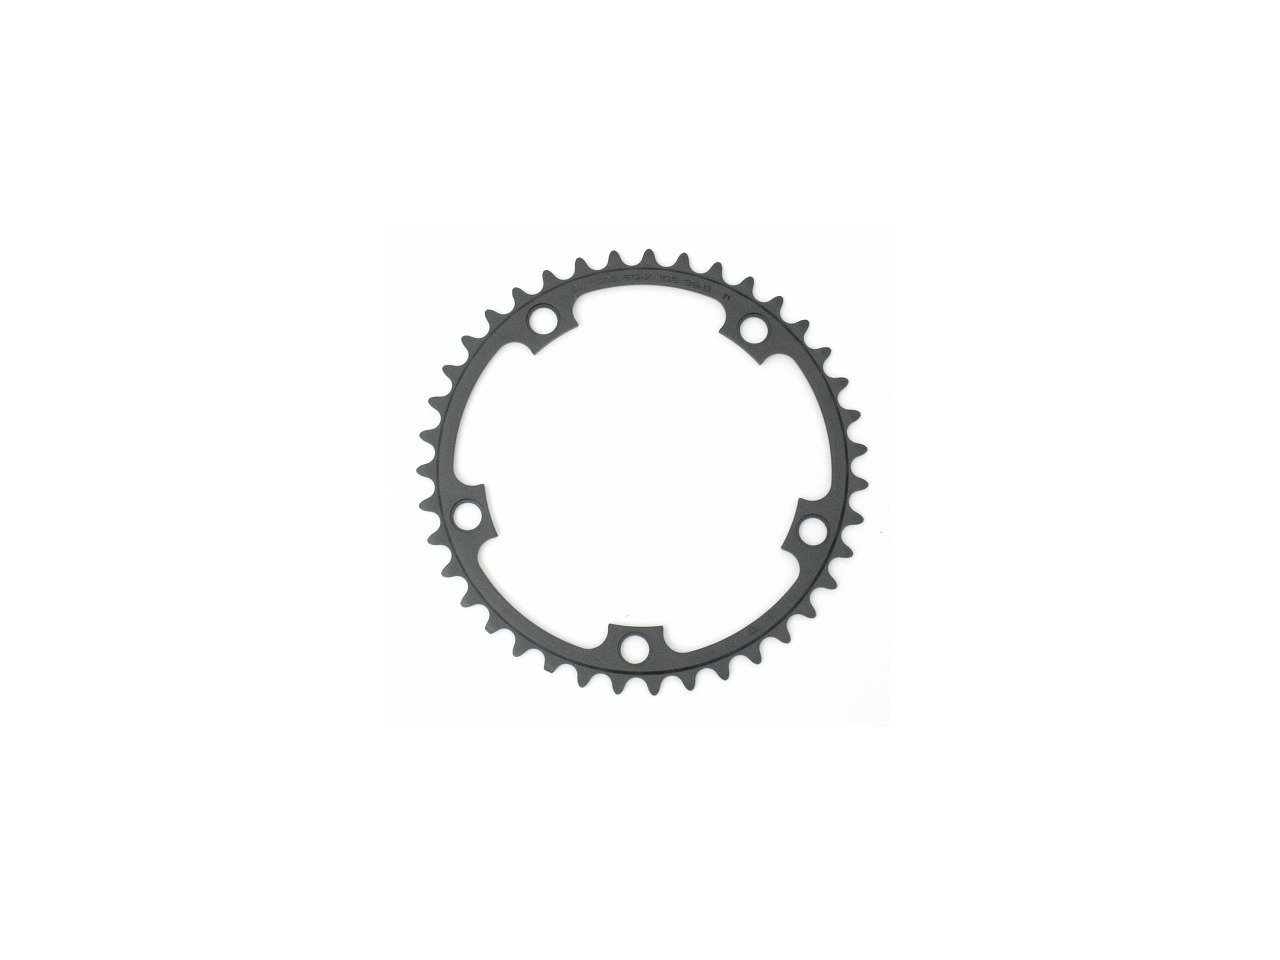 SHIMANO 105 5700  53T X 130MM 10-SPEED SILVER BICYCLE CHAINRING